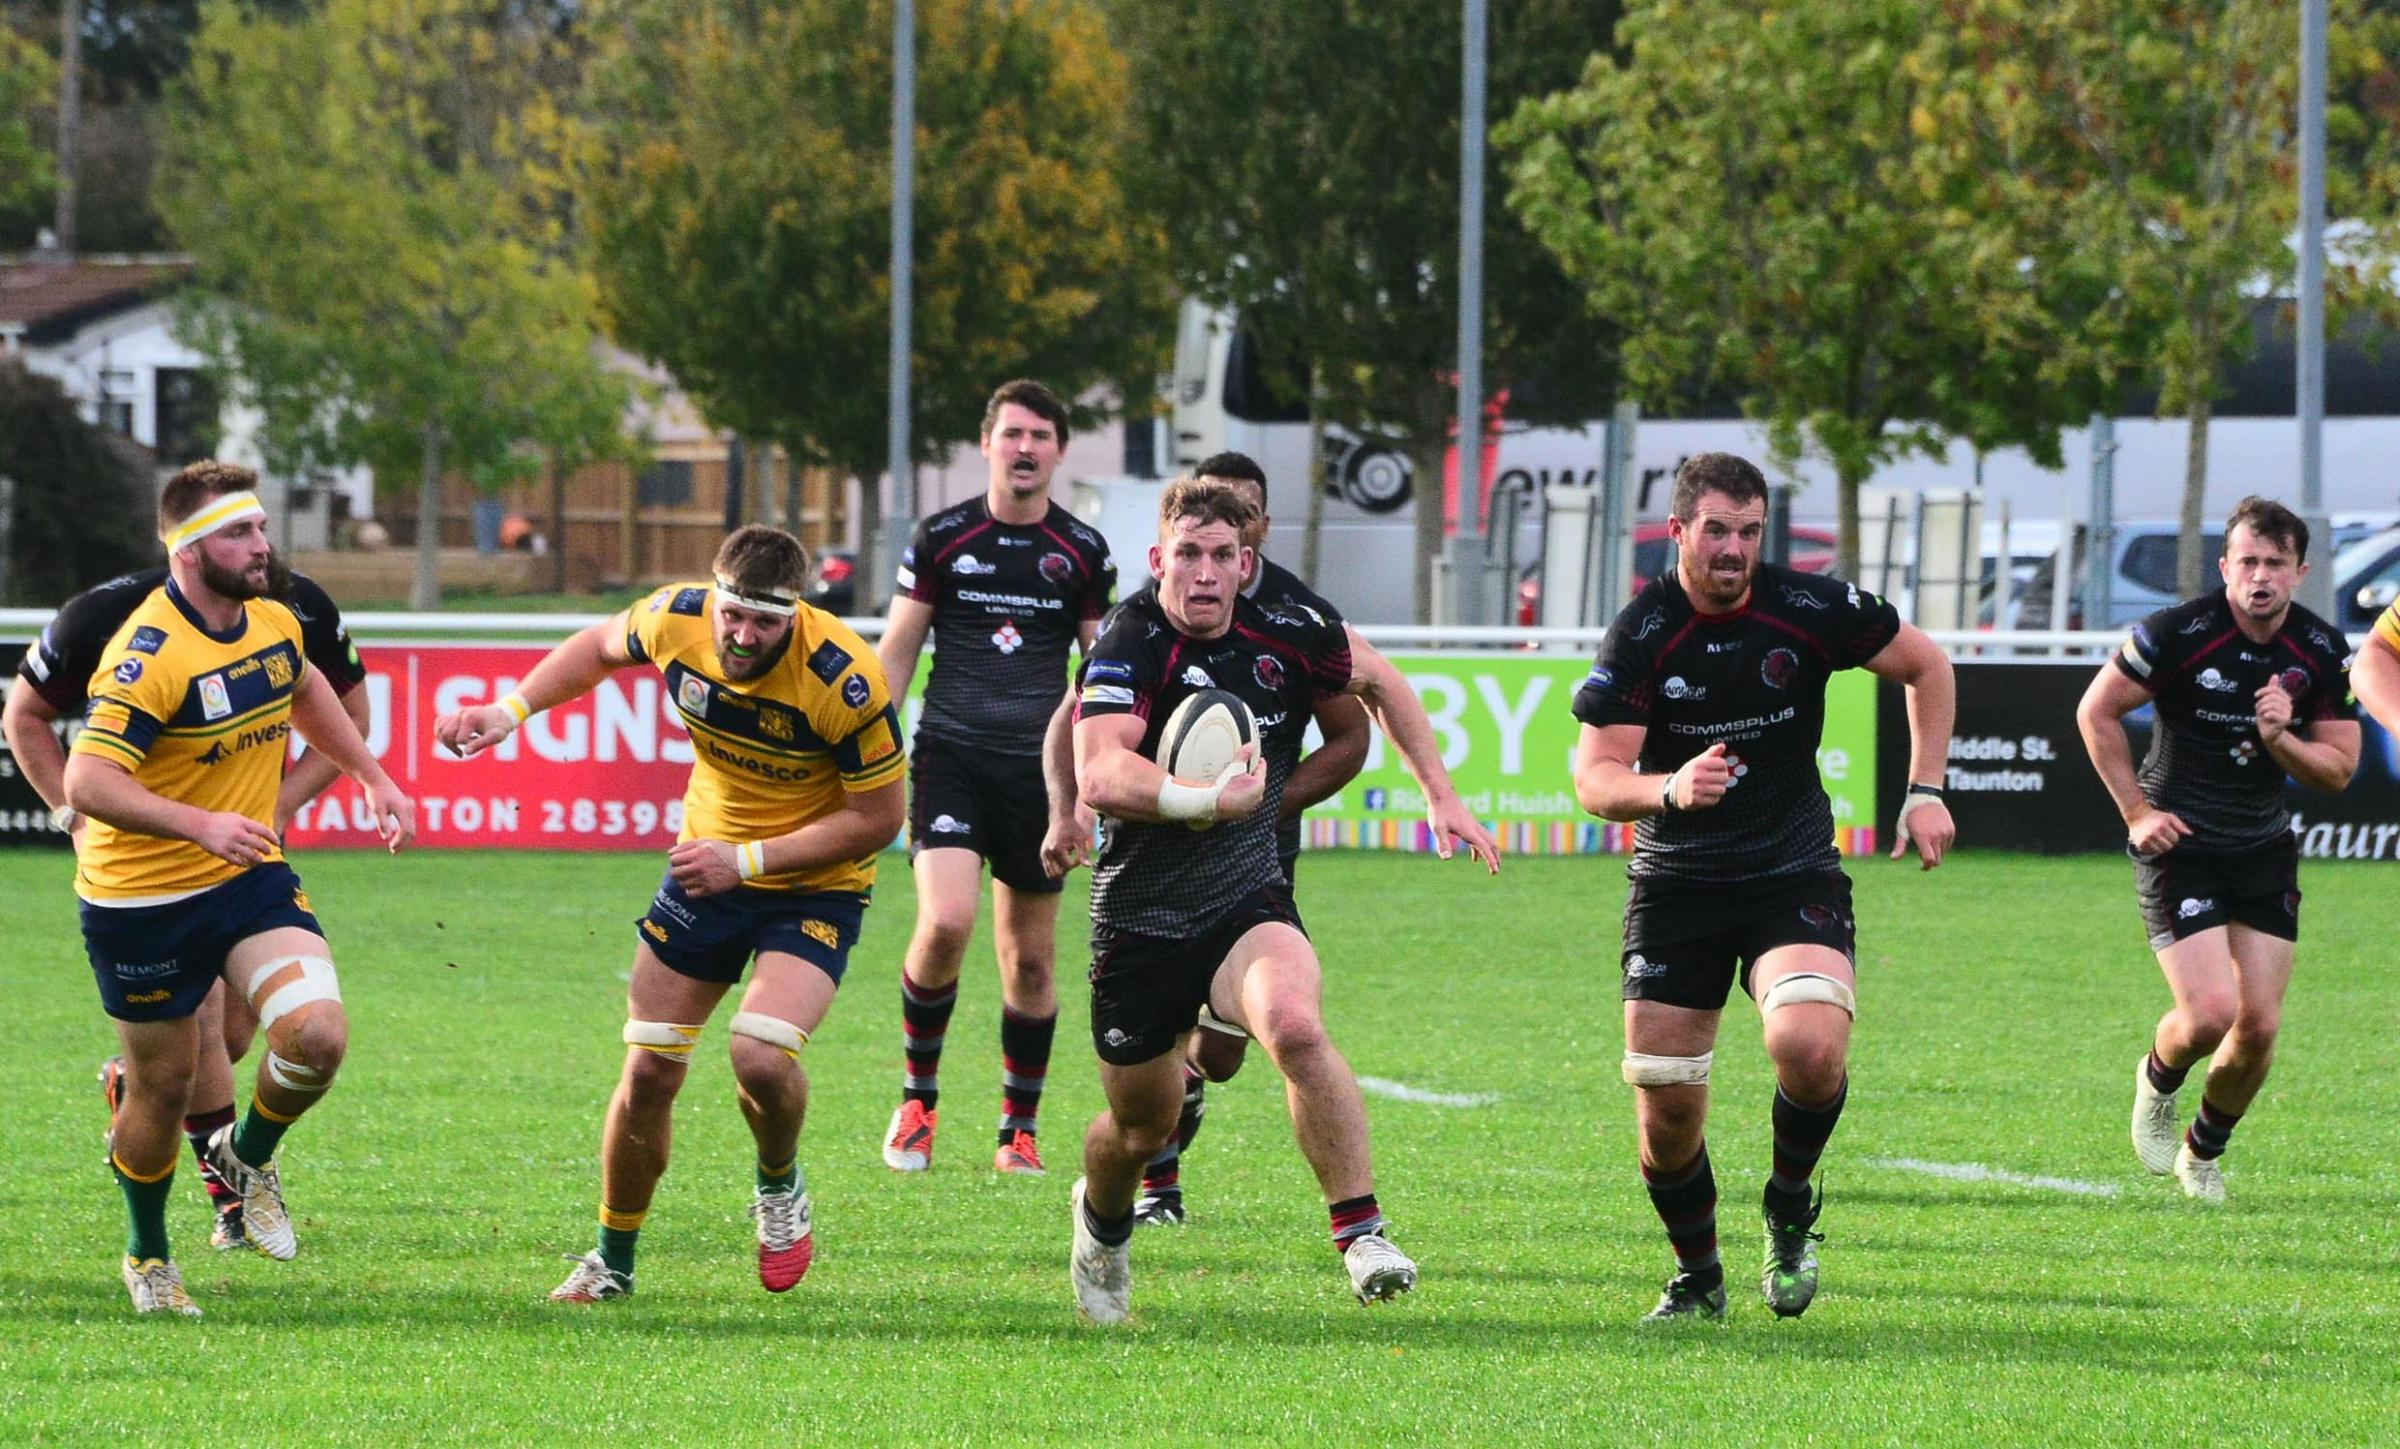 ON THE RUN: Jarrard Hayler in action for Taunton Titans against Henley